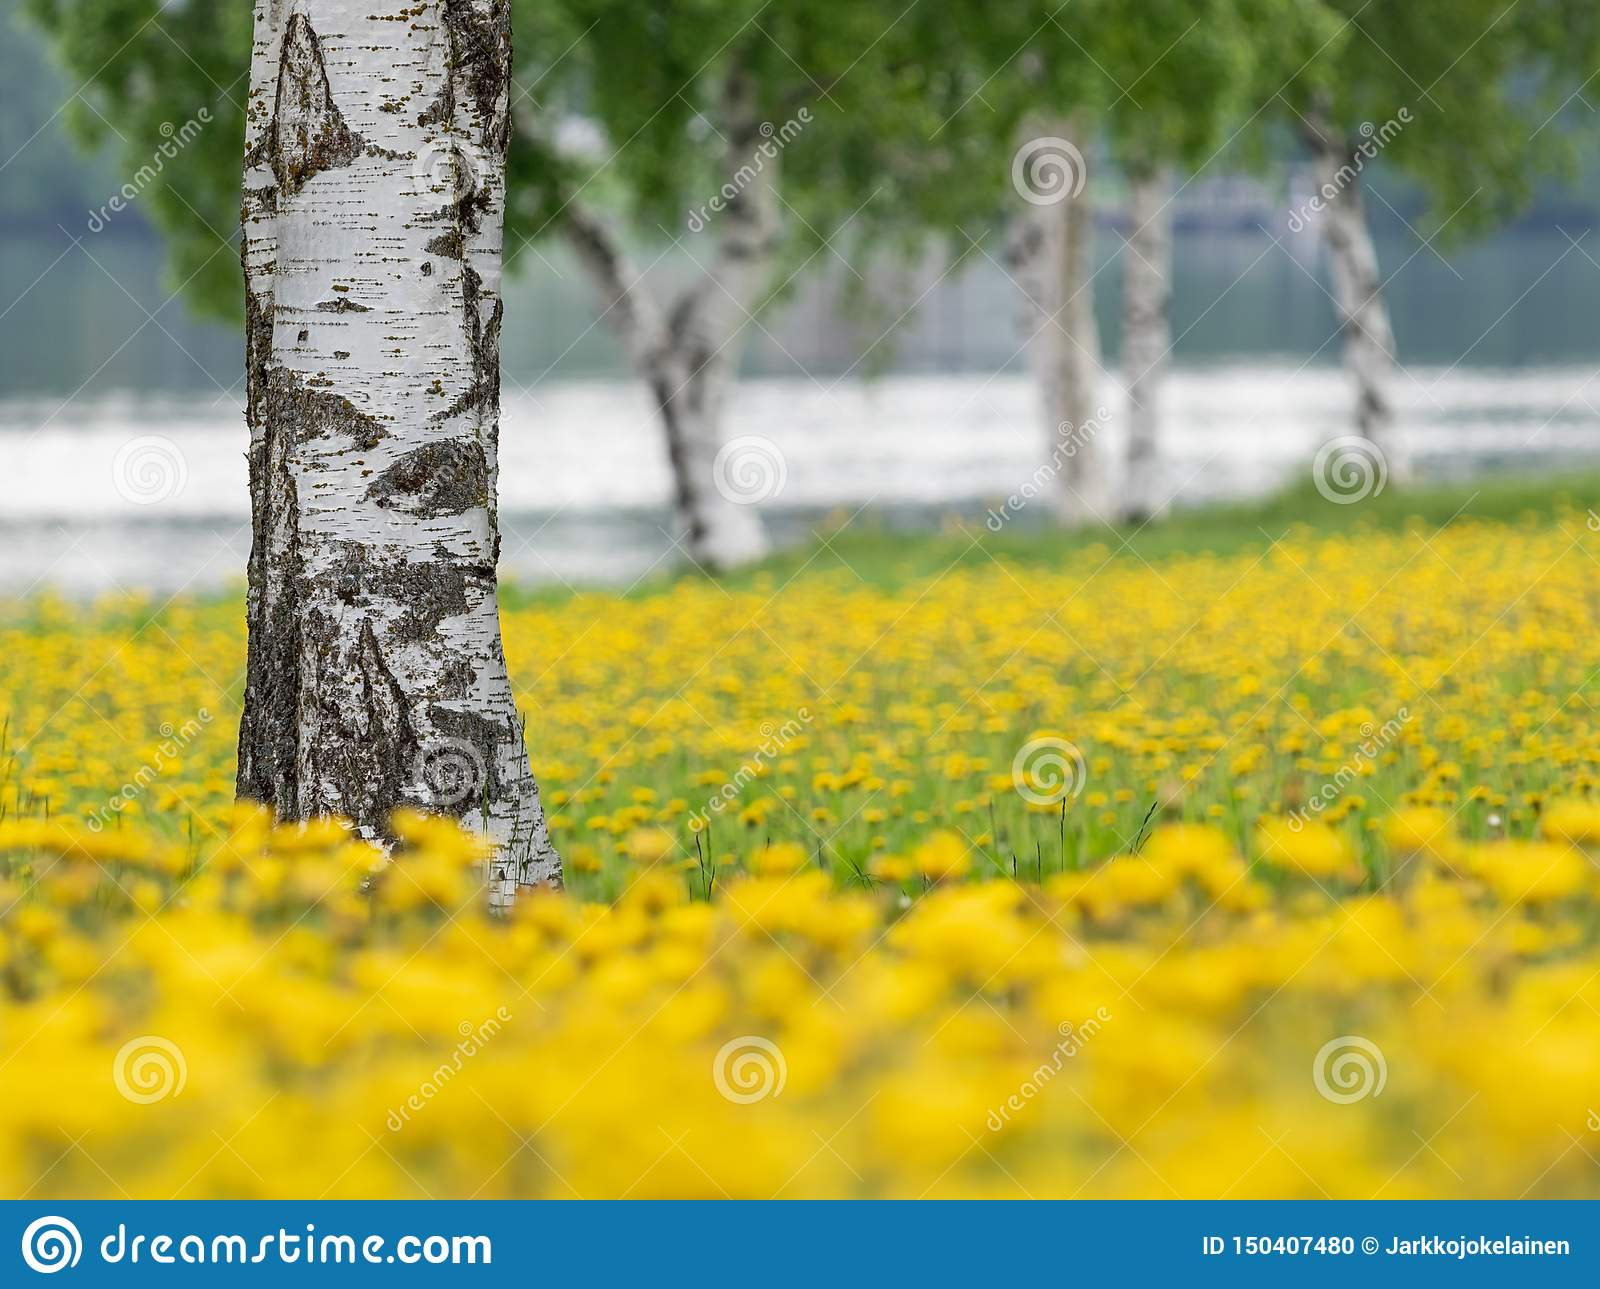 Birch trees in the midst of blossoming dandelions